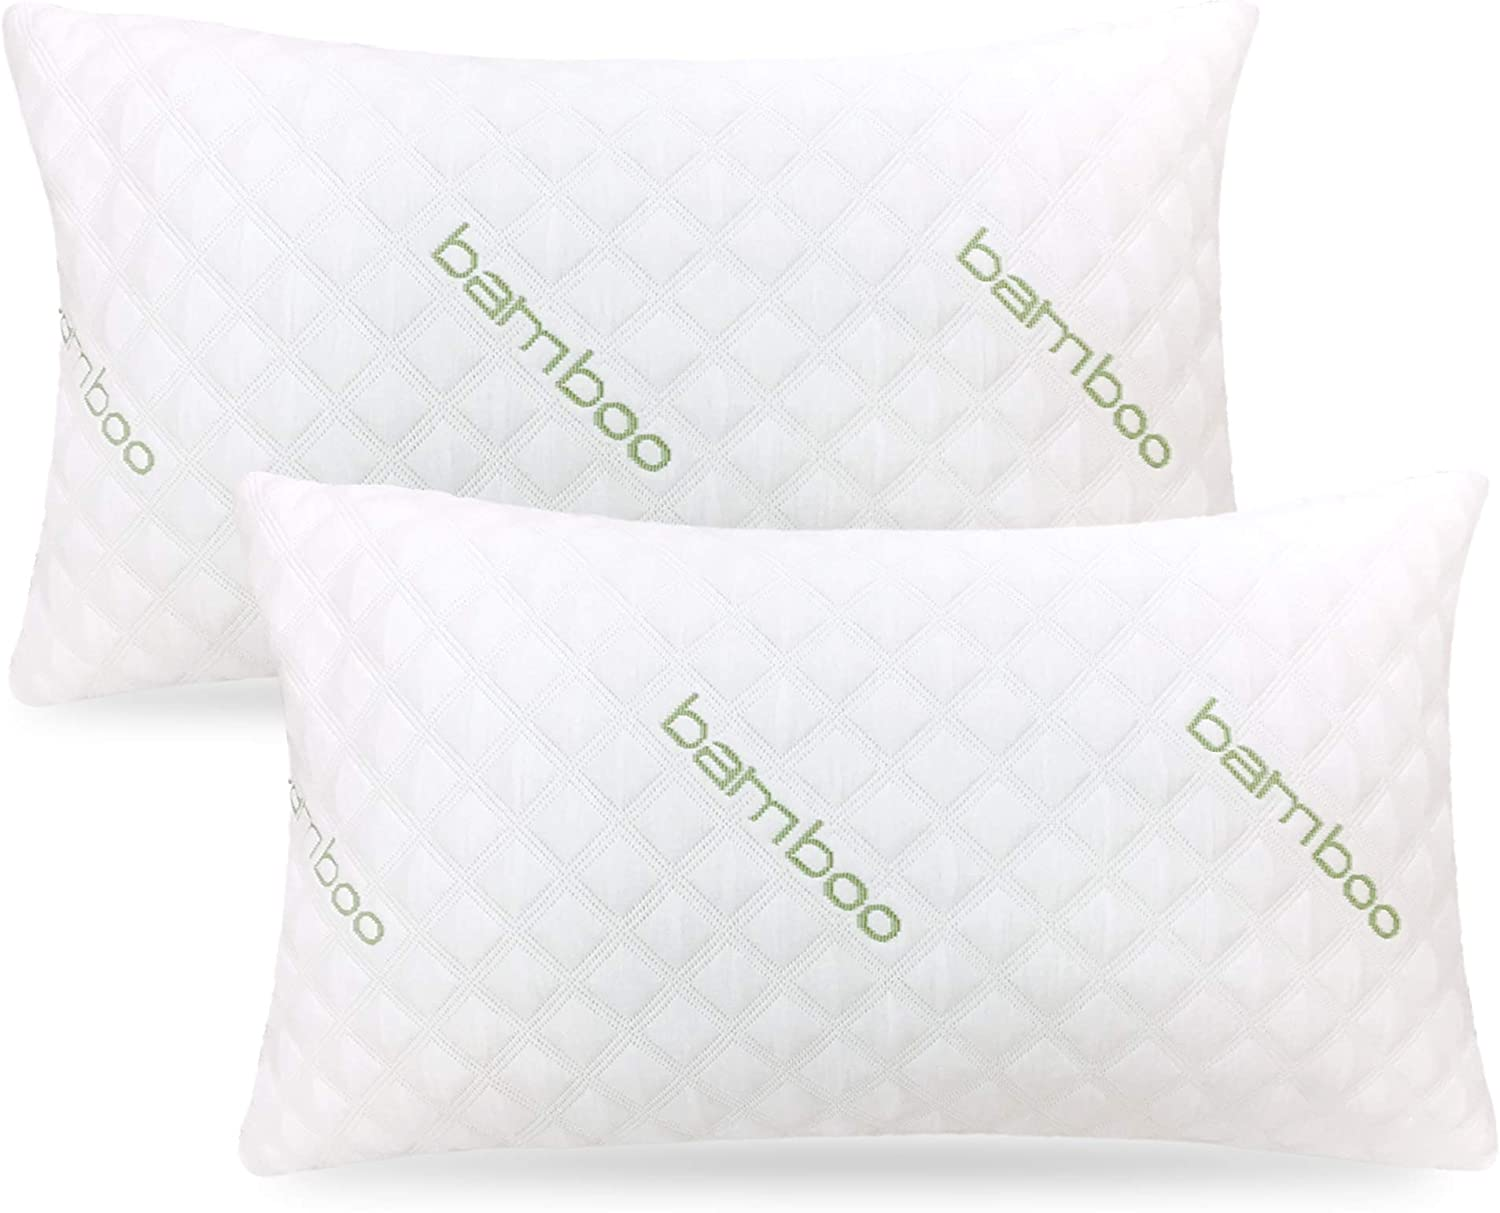 ik Bamboo Pillow (2-Pack) - Premium Pillows for Sleeping - Shredded Memory Foam Pillow with Washable Pillow Cover - Adjustable Loft - (King)